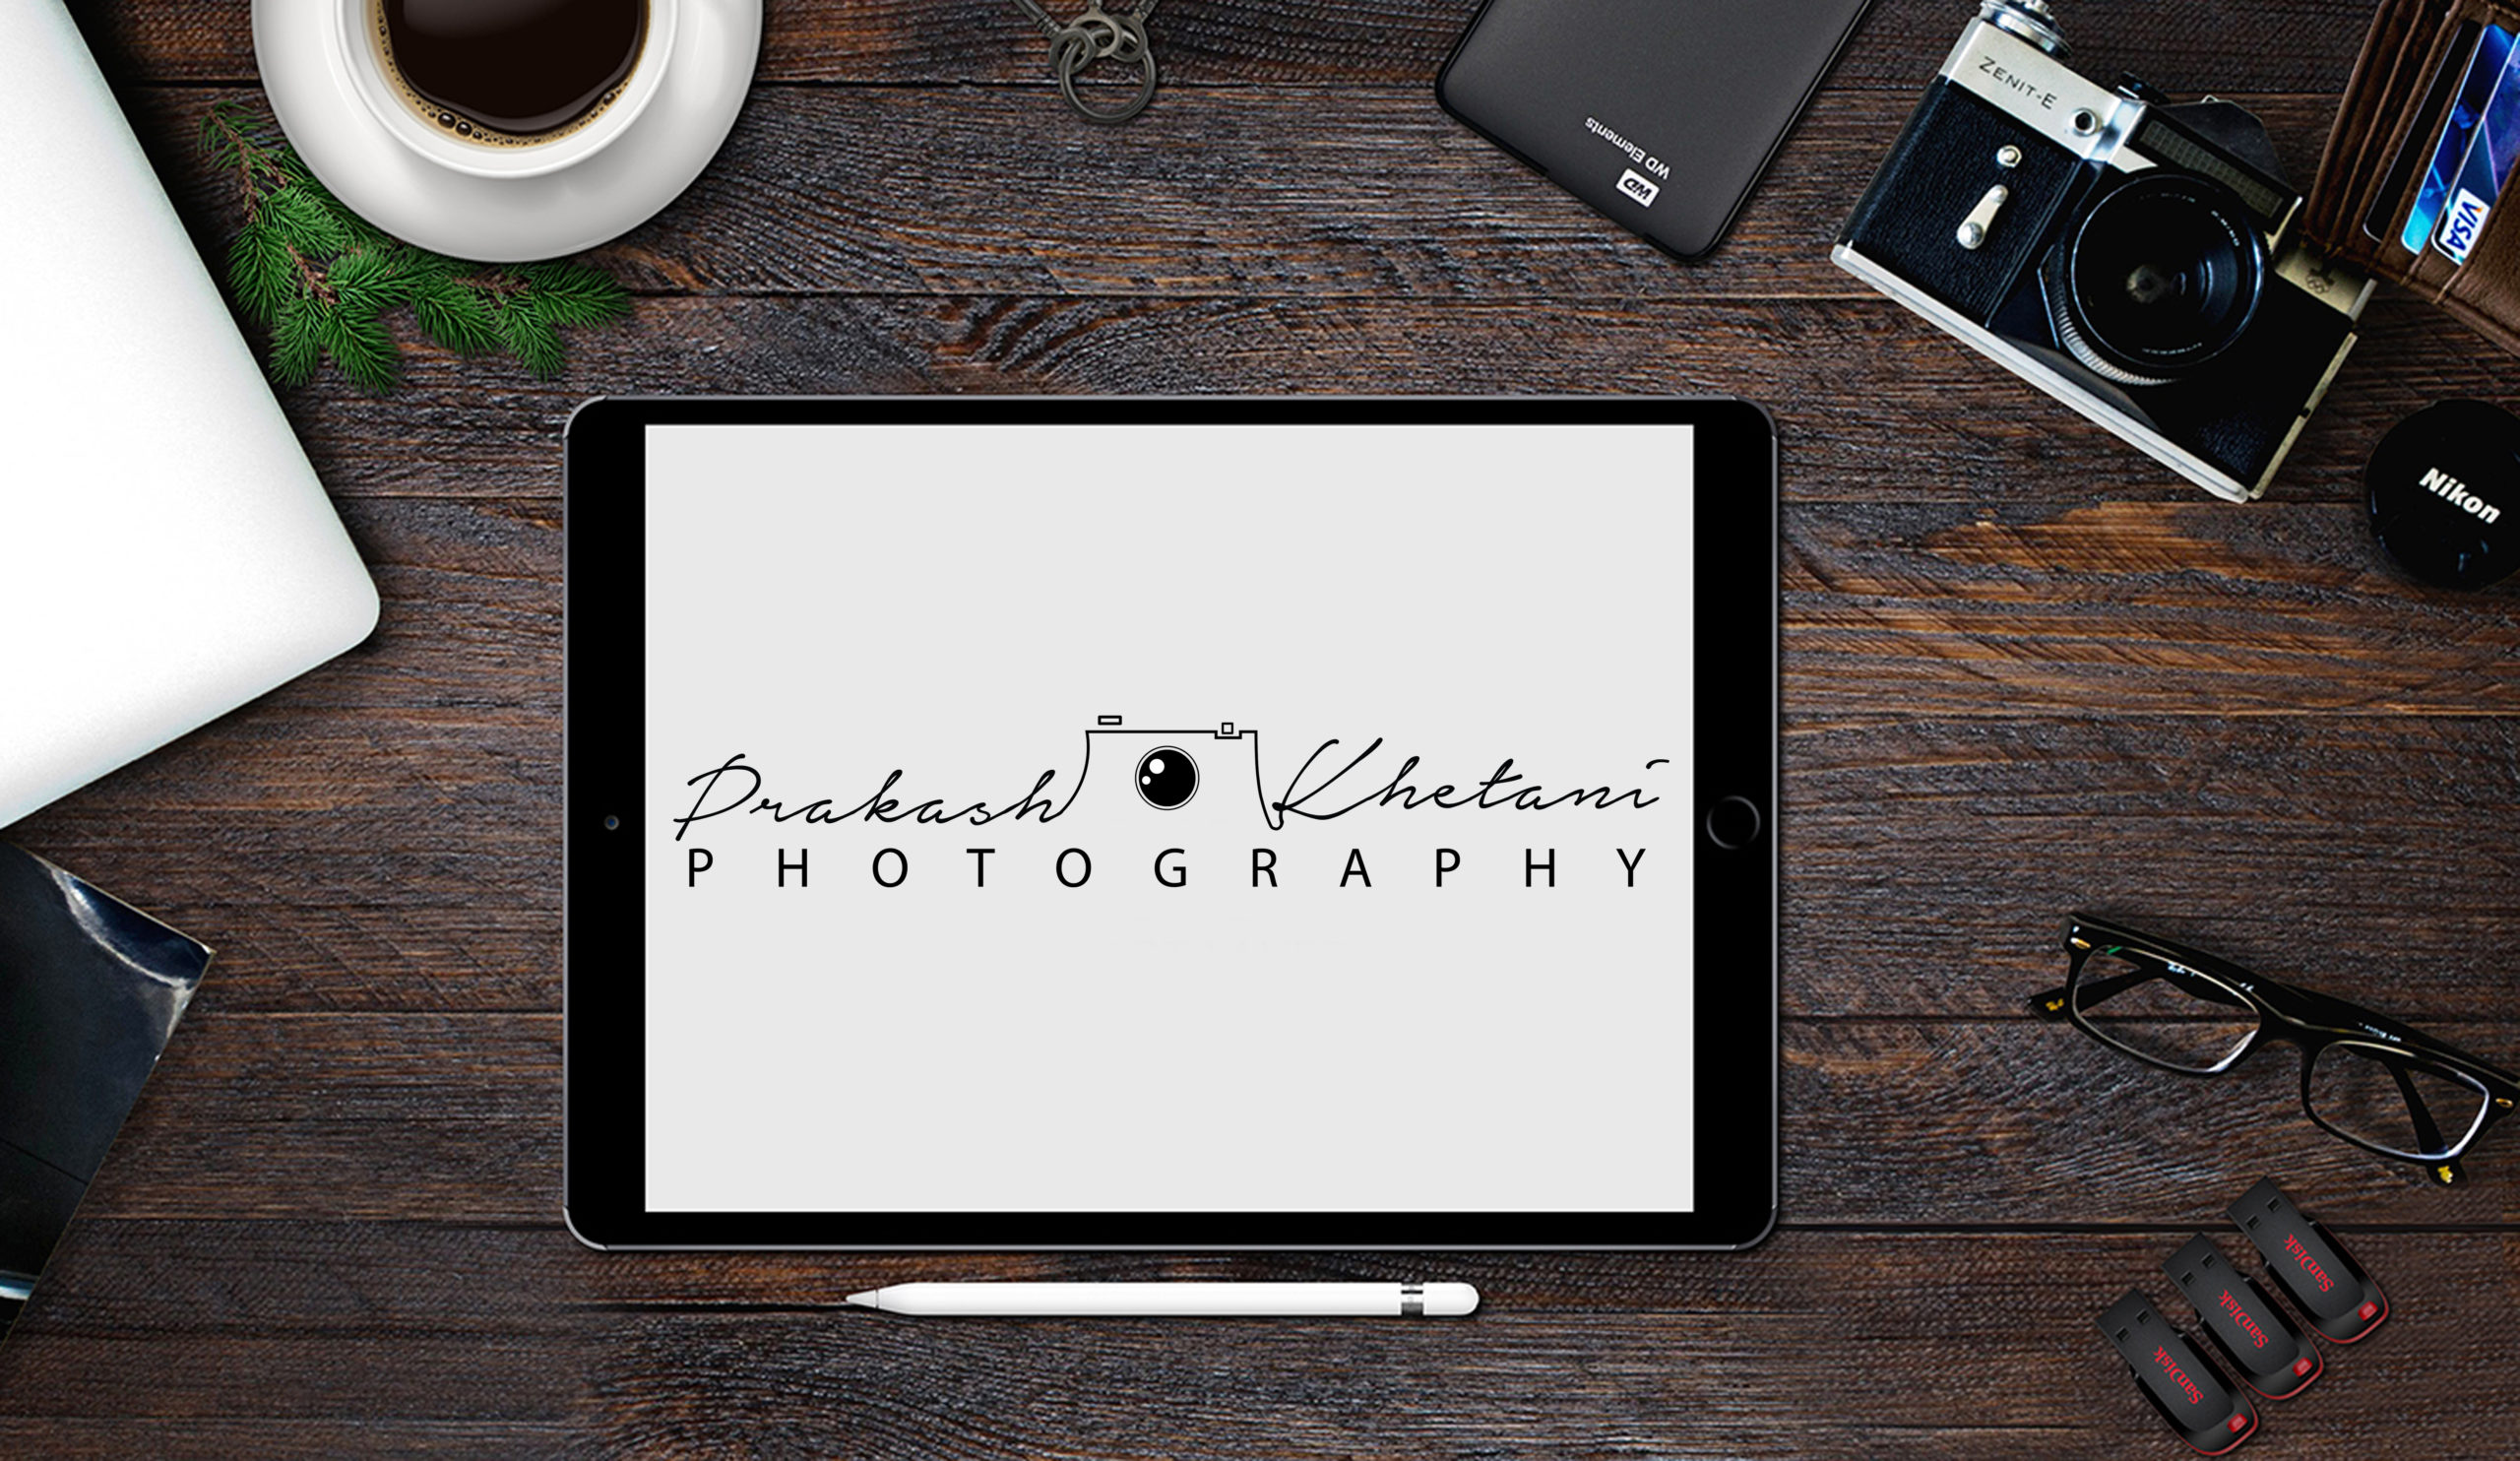 Prakash Khetani logo design by Badri Design